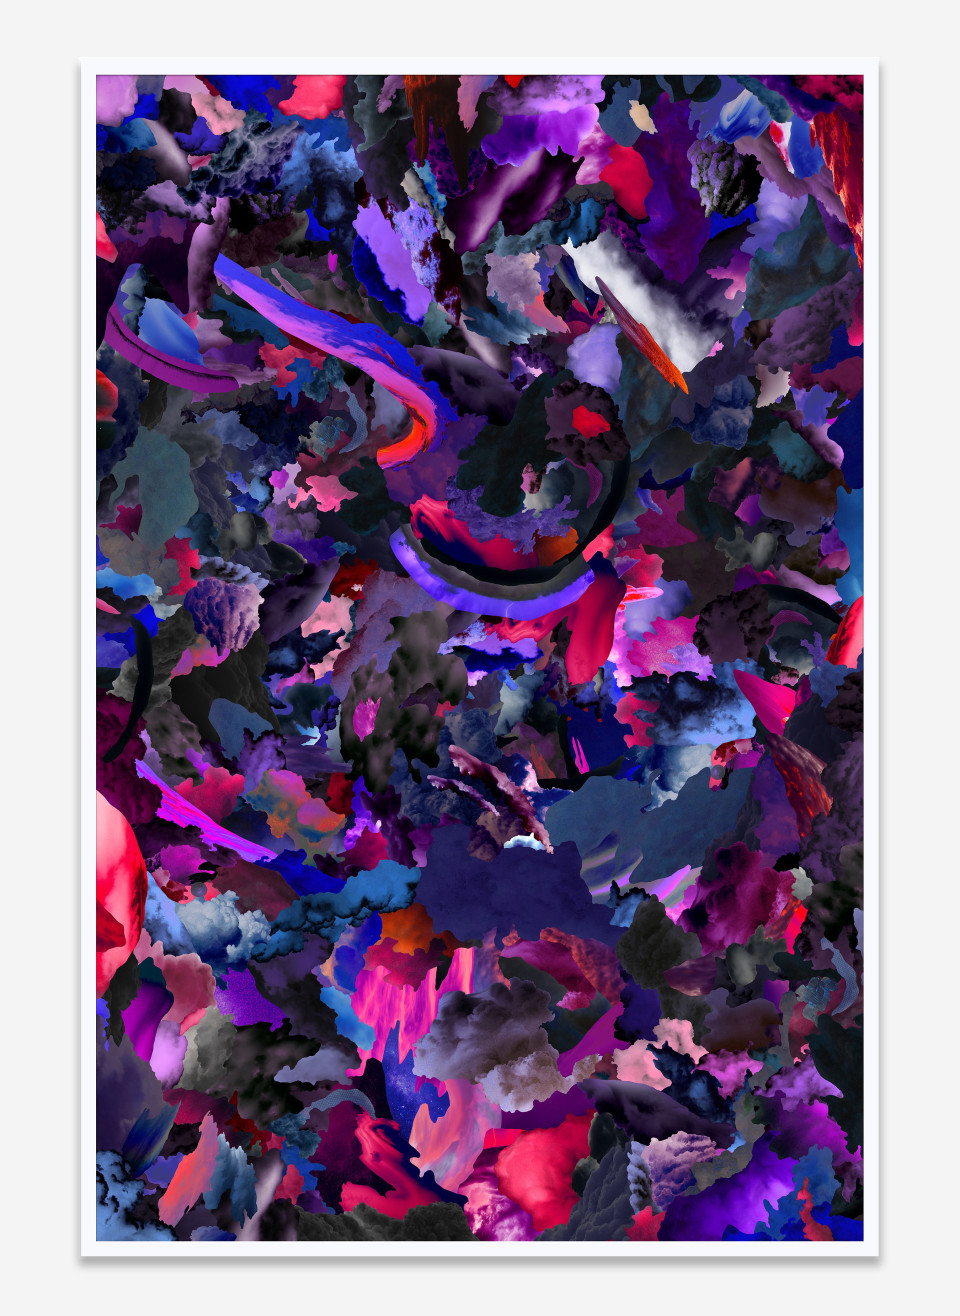 Image: Case Simmons  Clouds Z, 2019  pigment print in artist's frame  60 x 40 inches (152.4 x 101.6 cm)  edition of 1 plus 1 artist's proof